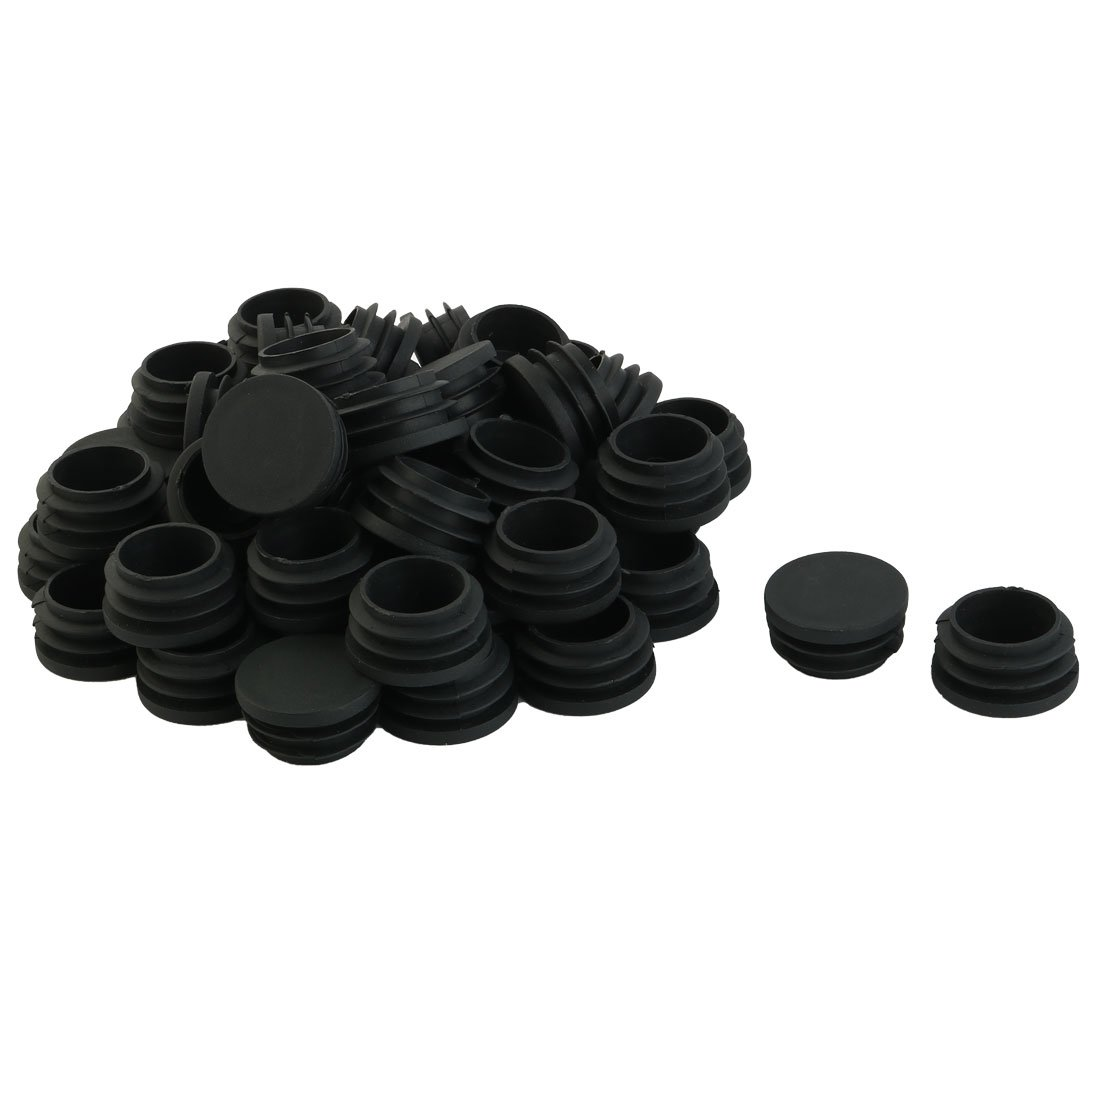 uxcell Plastic Chair Table Legs Hole End Cap Round Tube Insert 32mm Diameter 50pcs a15090900ux0692